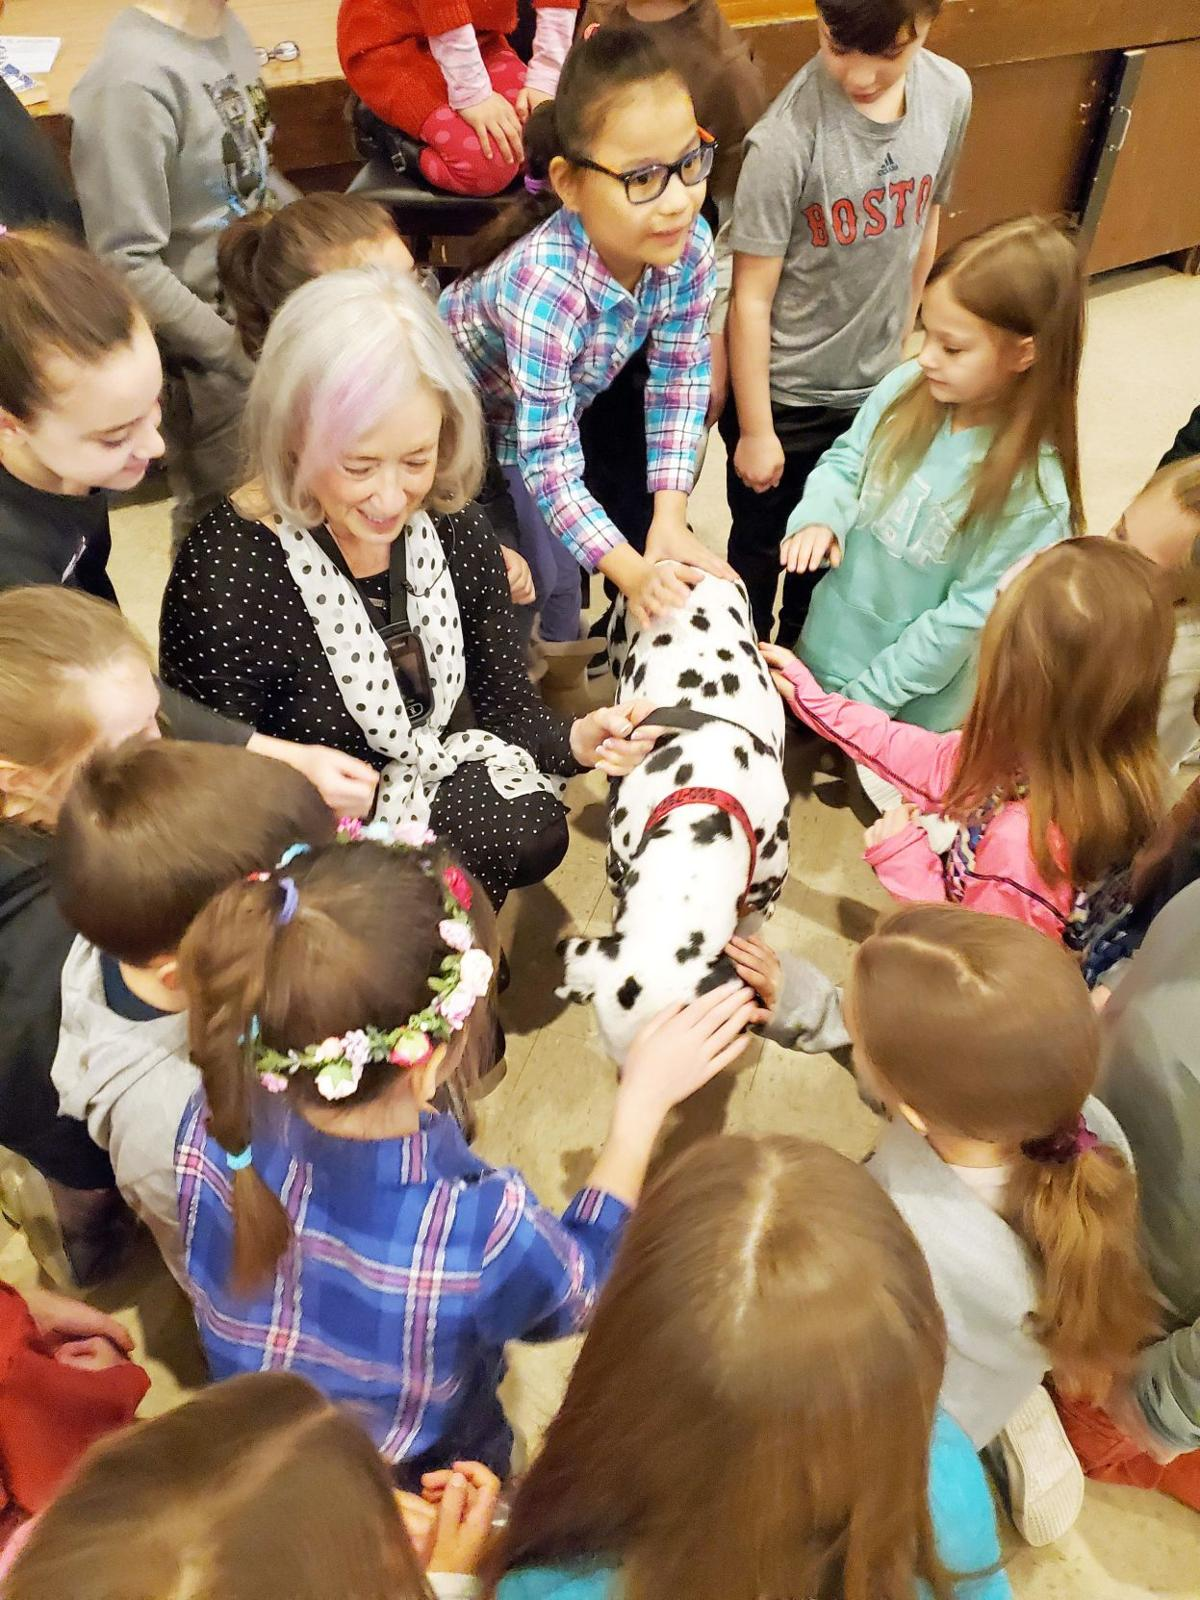 Killingworth author pens new book; the star is a beloved deaf Dalmatian